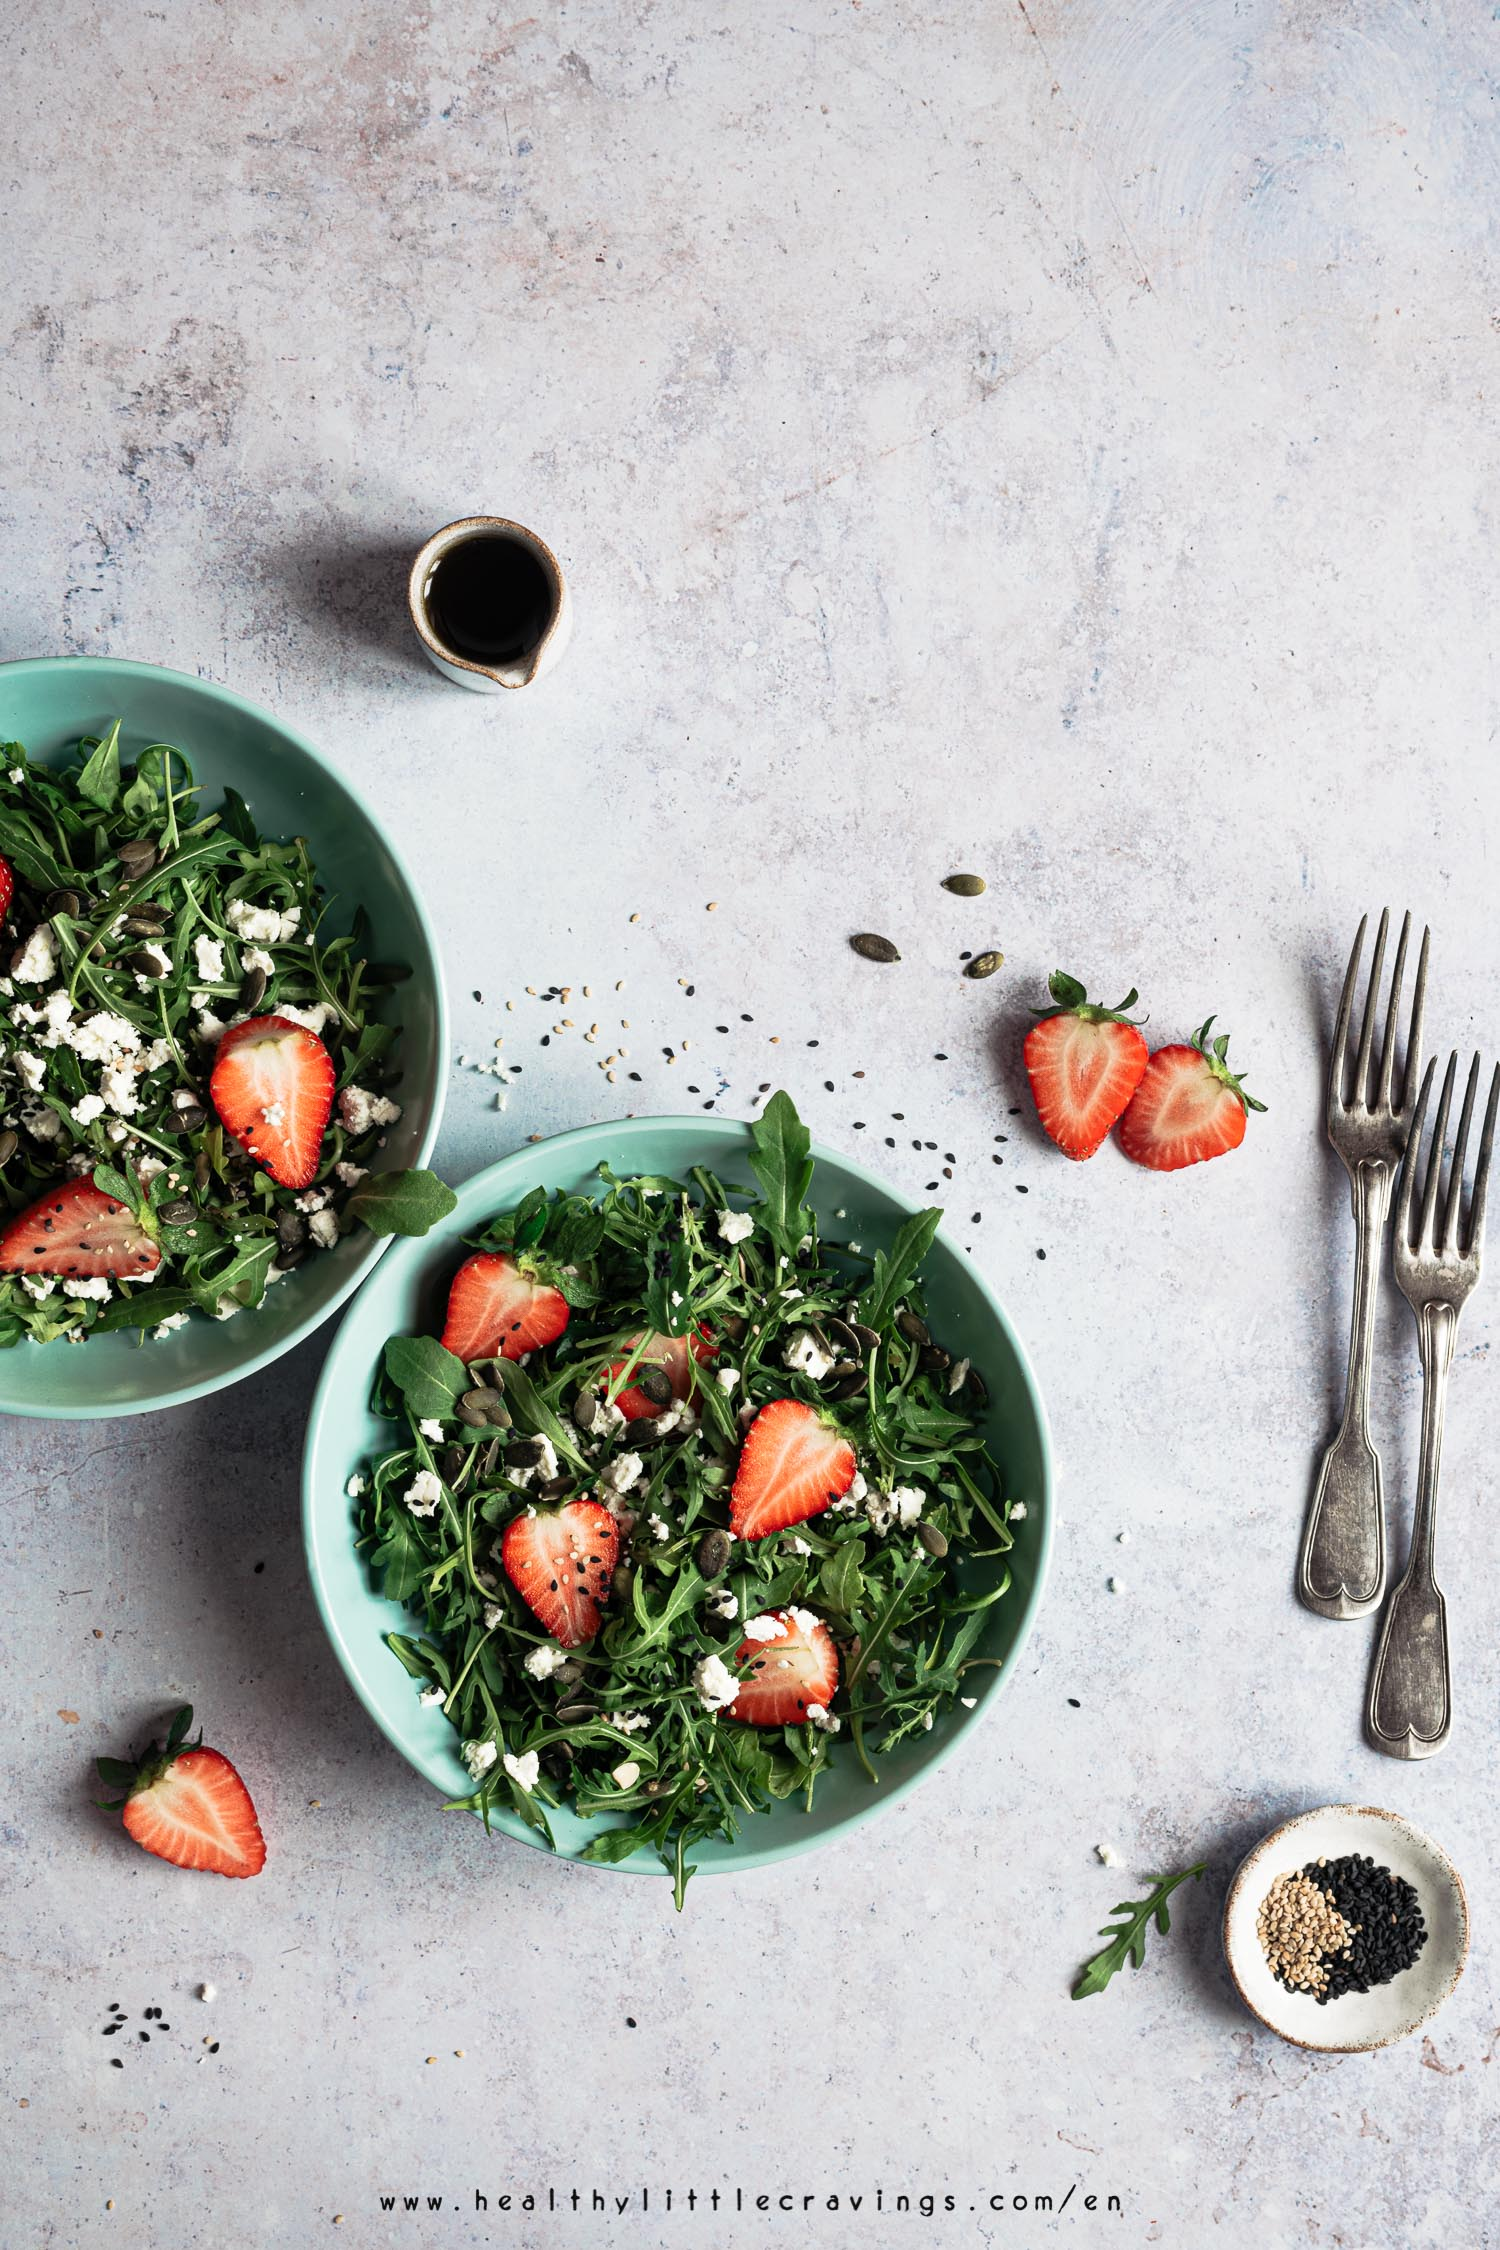 Strawberry arugula salad served into green plates